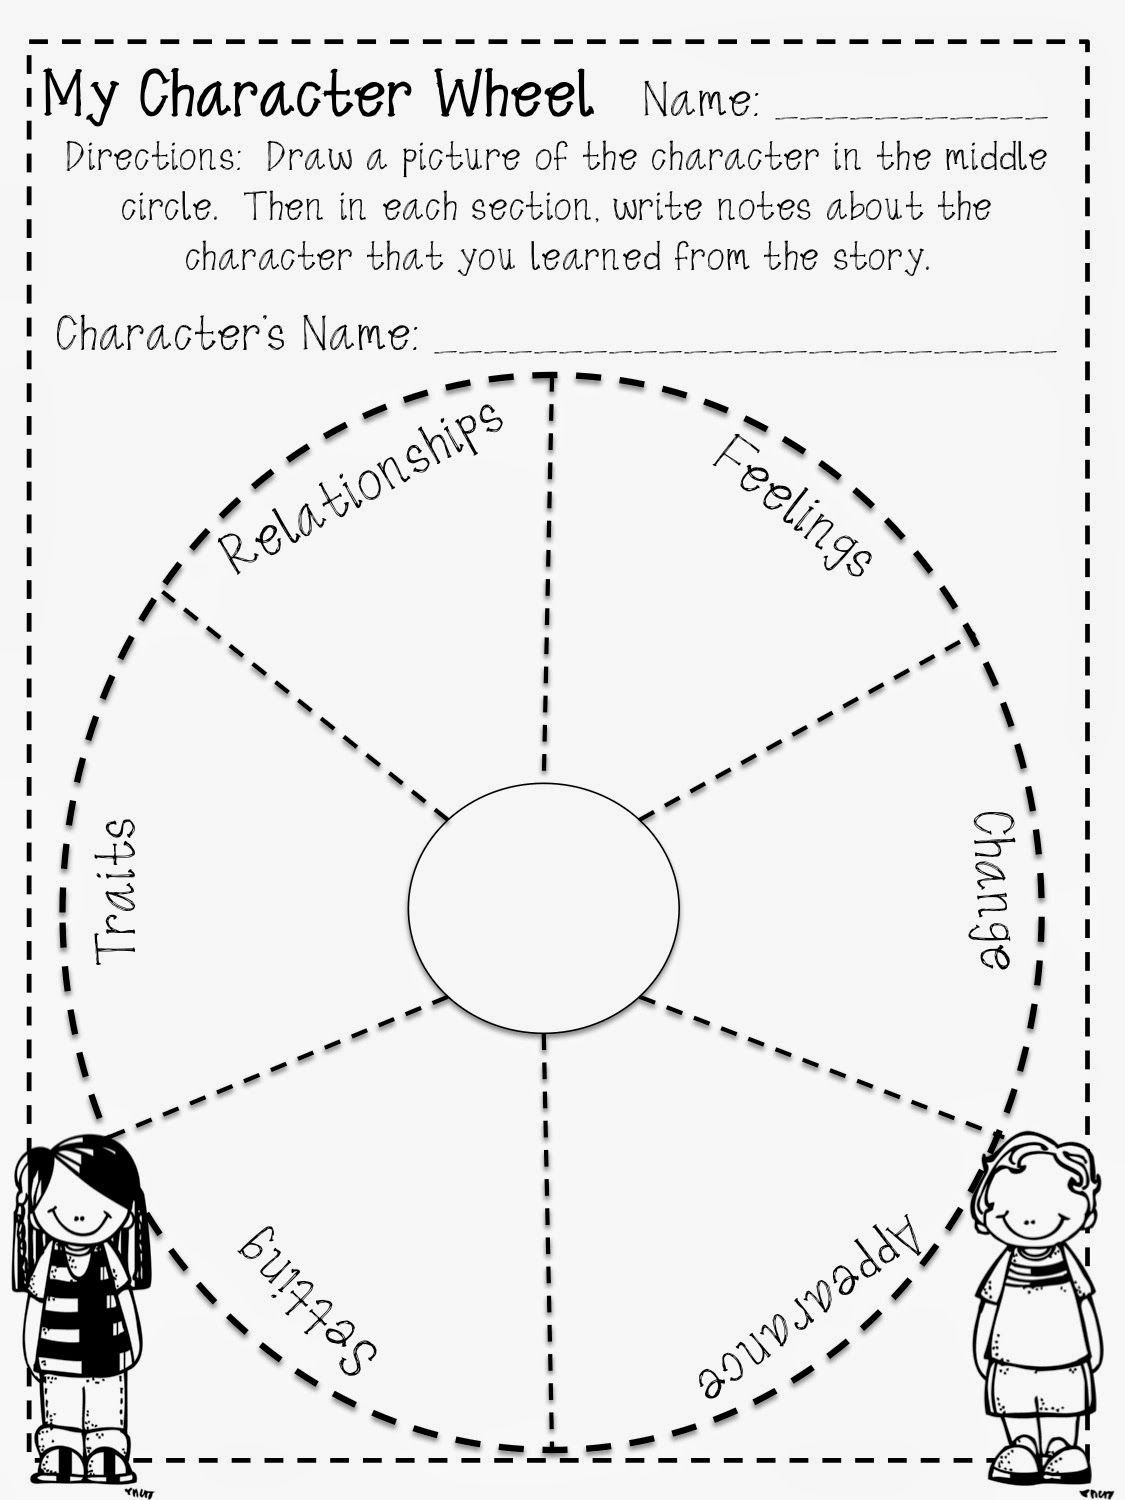 Character Traits Worksheet 2nd Grade Reading Character Wheel Freebie